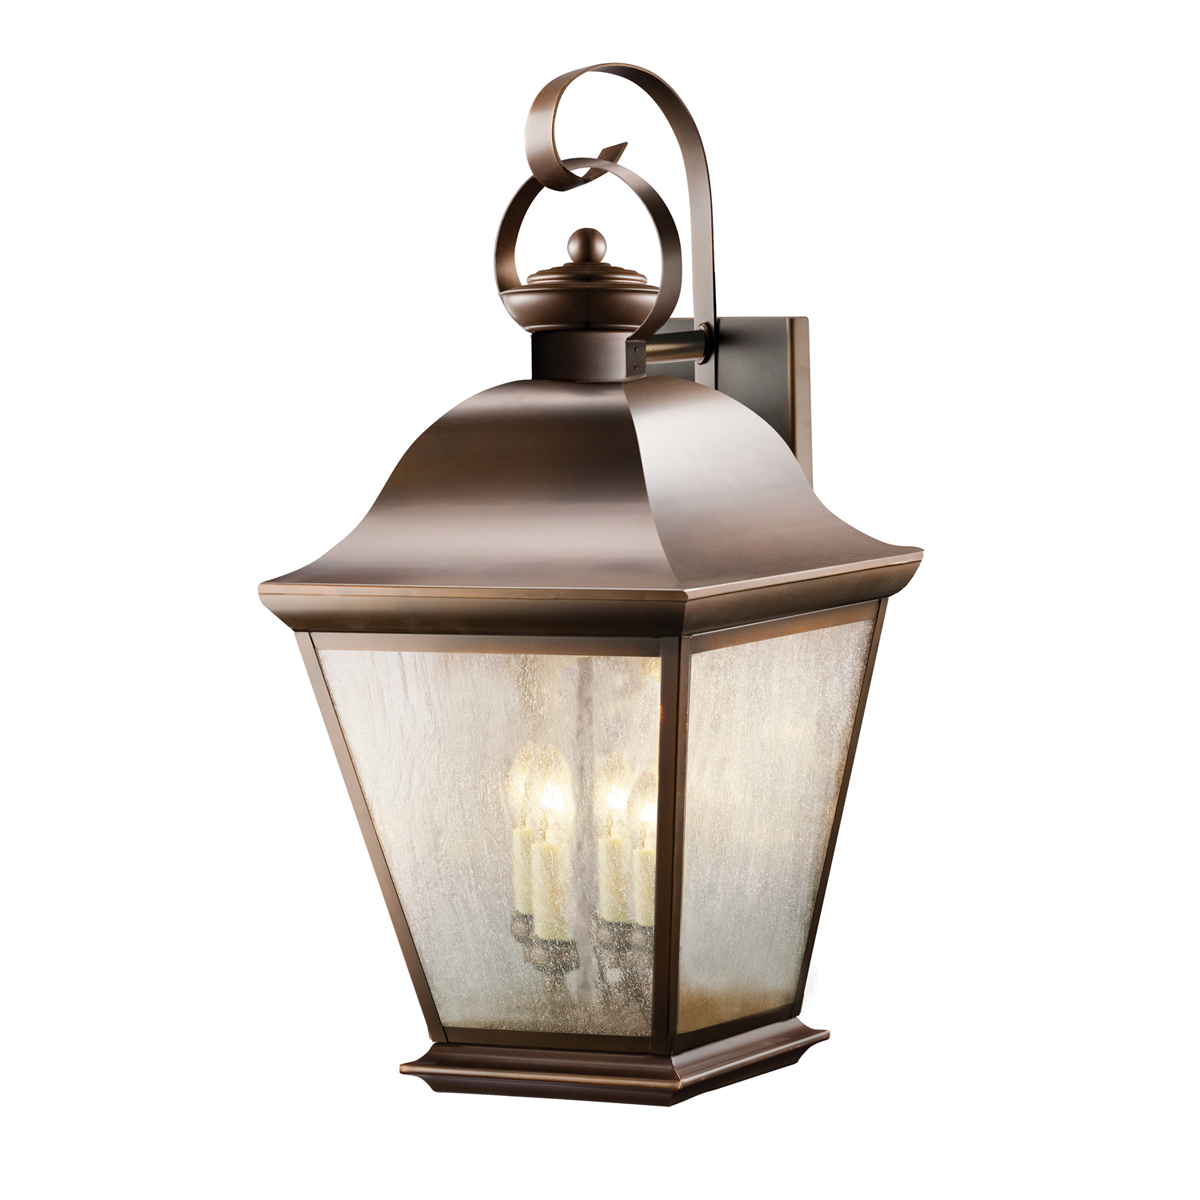 Kichler Lighting  9704OZ  Mount Vernon 4 Light X Large Outdoor Wall Sconce  in Olde BronzeKichler Lighting  9704OZ  Mount Vernon 4 Light X Large Outdoor  . Kichler Lighting Outdoor Sconce. Home Design Ideas